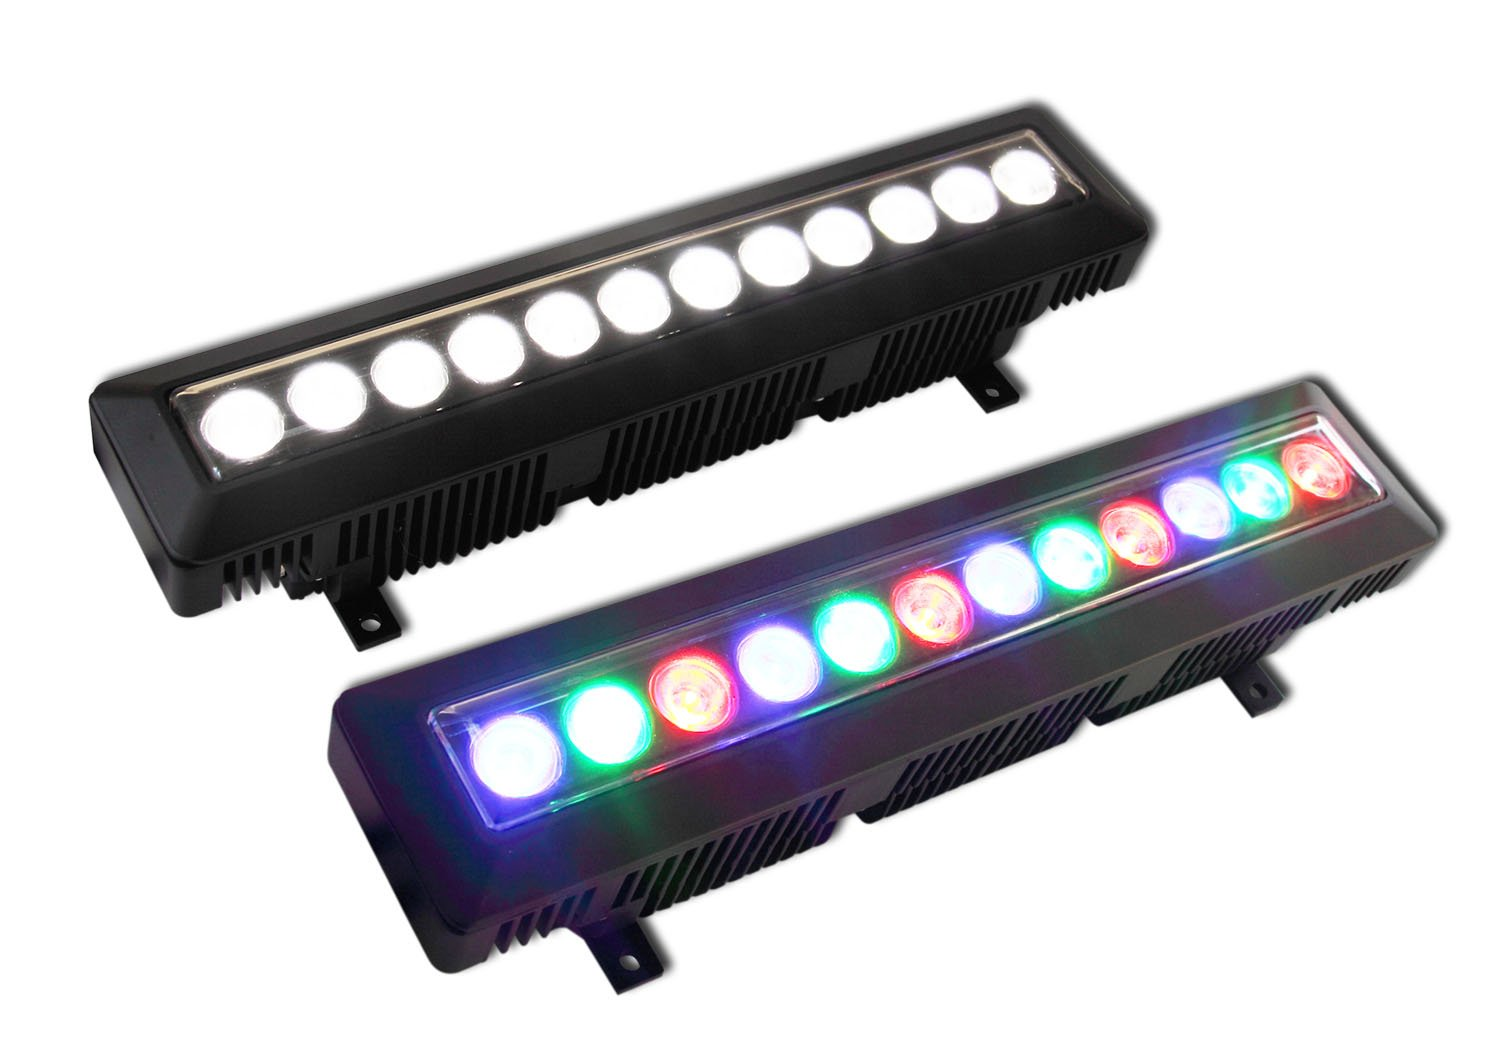 Led wall wash lights provide a vibrant color to your home high brightness led wall washer light 243w rgb 3in1 color with waterproof ip65 arubaitofo Images